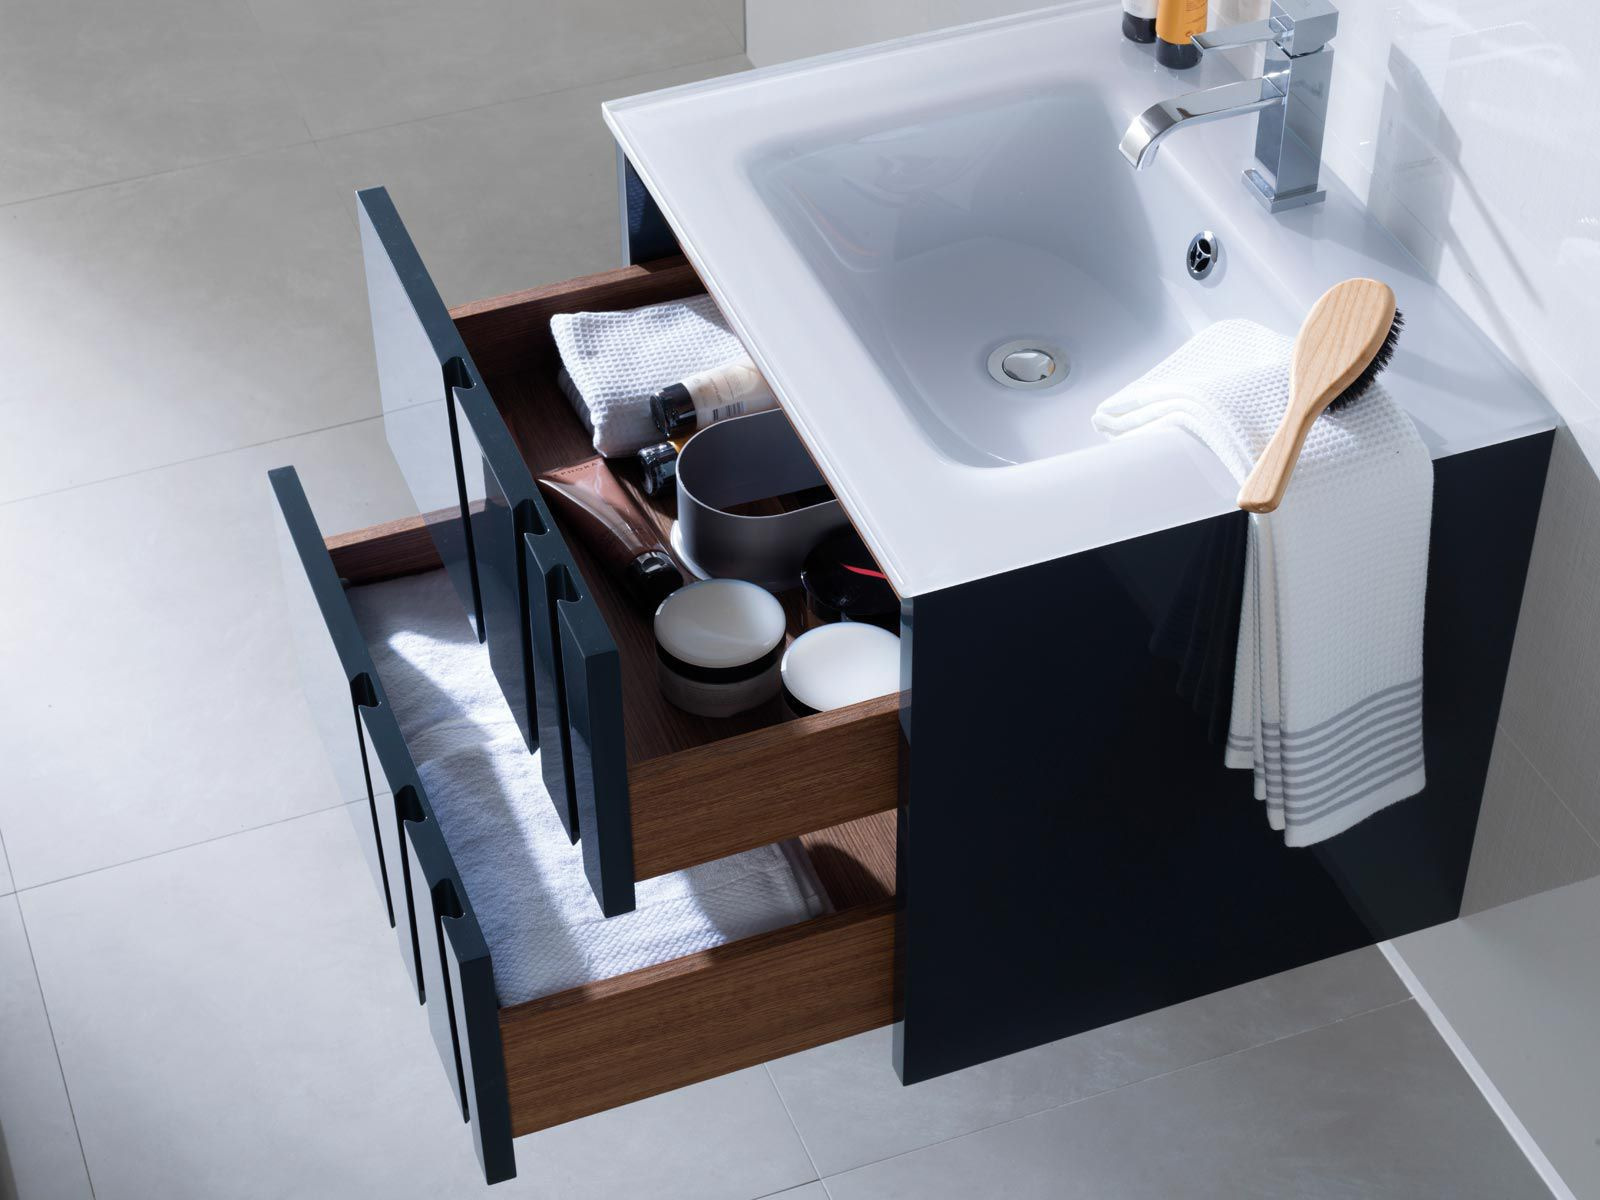 Wallhung Washbasin Cabinet  Wooden  Contemporary  Lacquered - Porcelanosa bathroom accessories